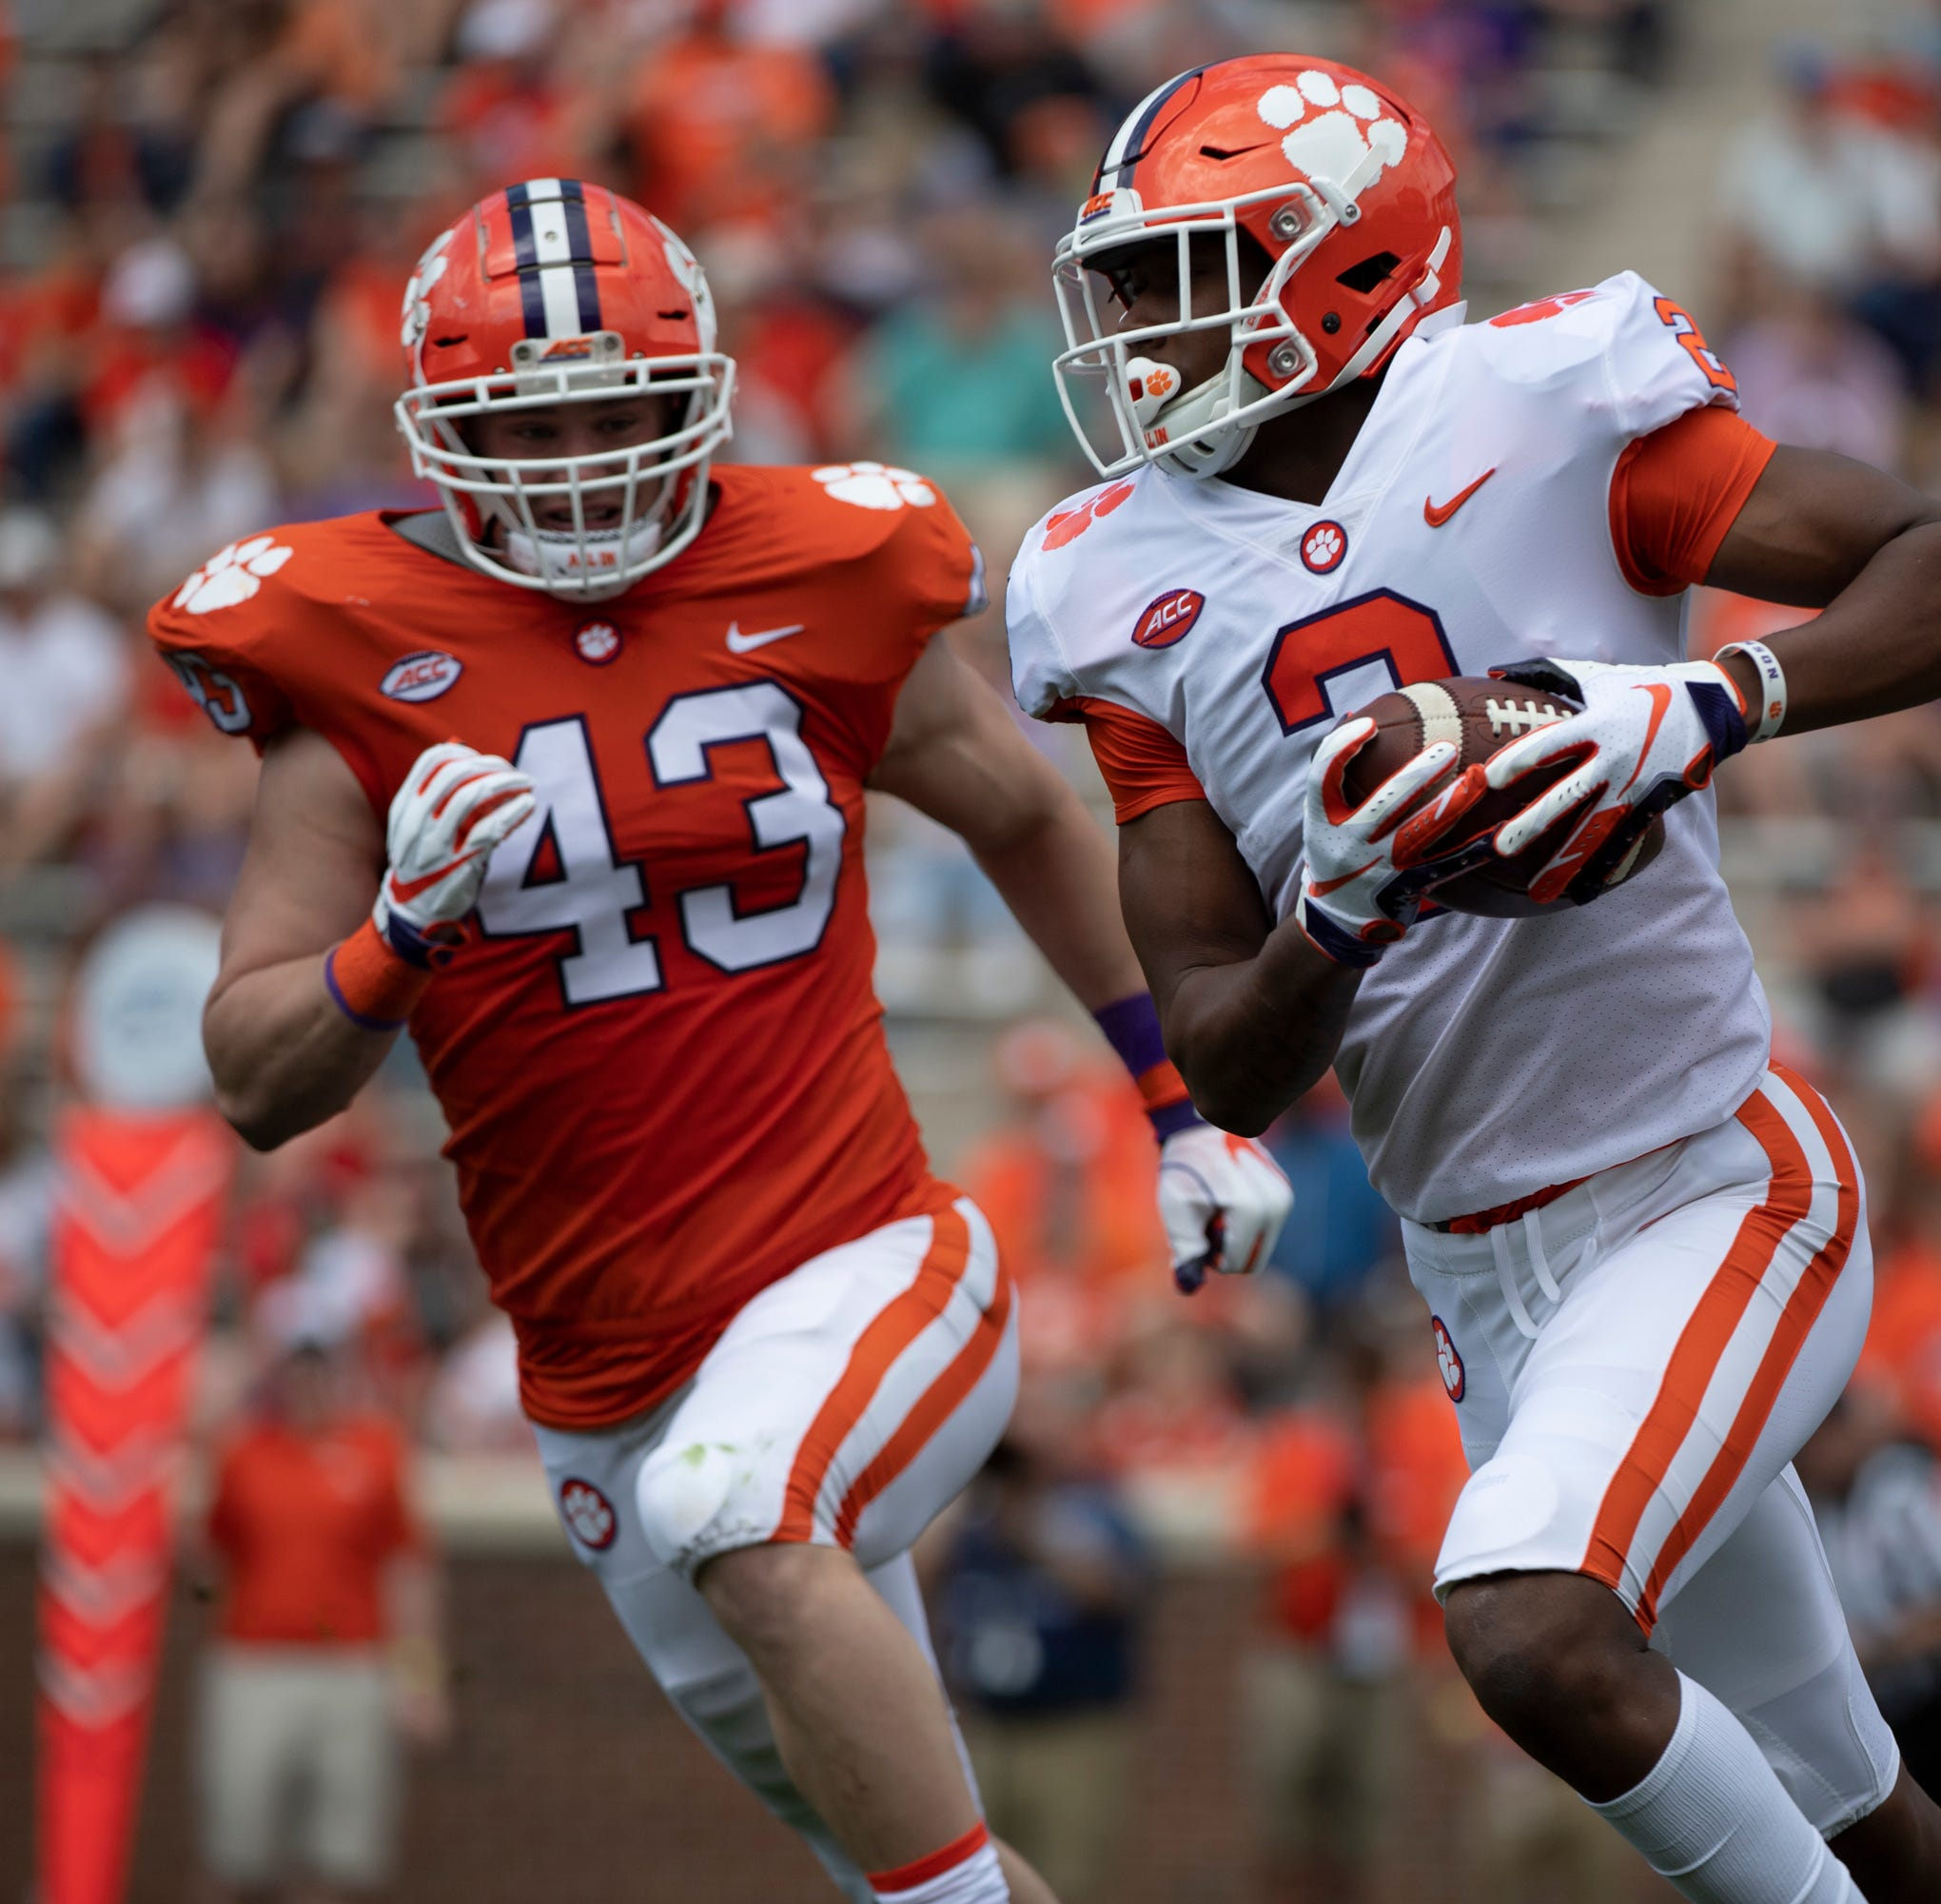 Clemson football spring game: 6 takeaways from the Tigers' Orange & White clash